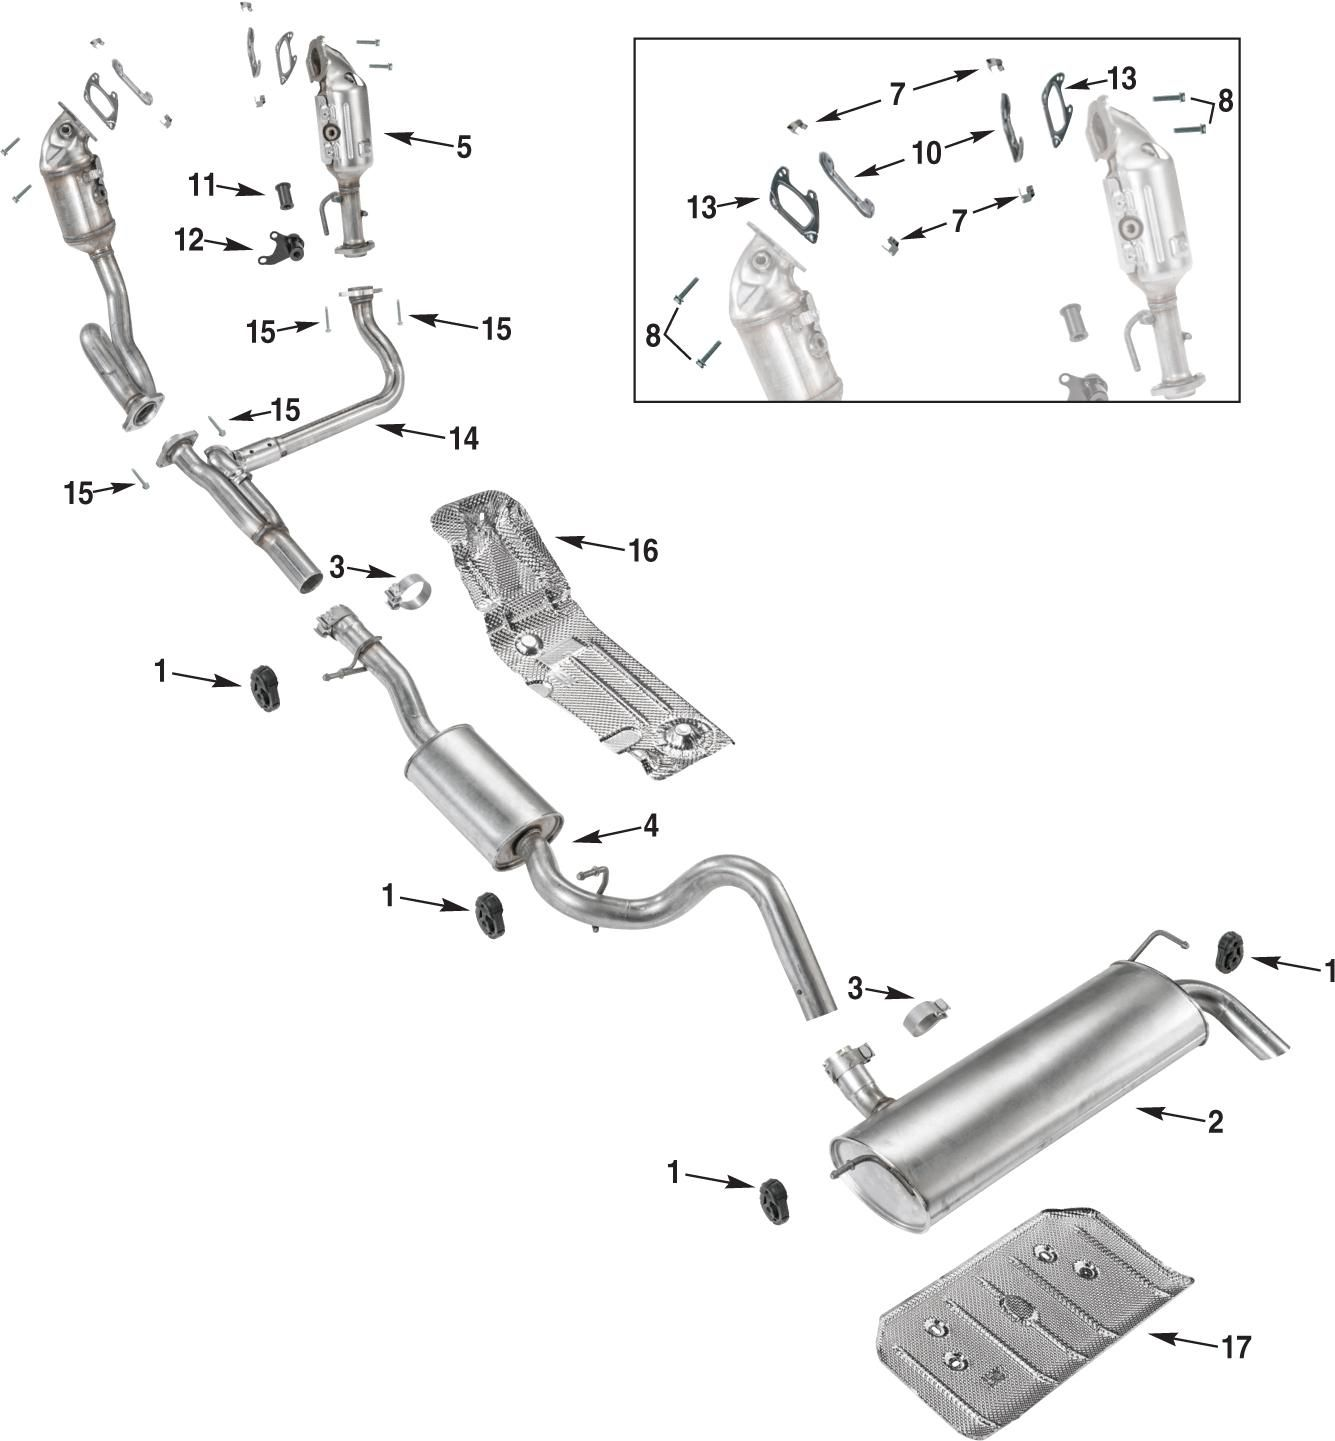 small resolution of jeep exhaust diagram wiring diagram blog 2012 jeep wrangler exhaust diagram jeep exhaust diagram